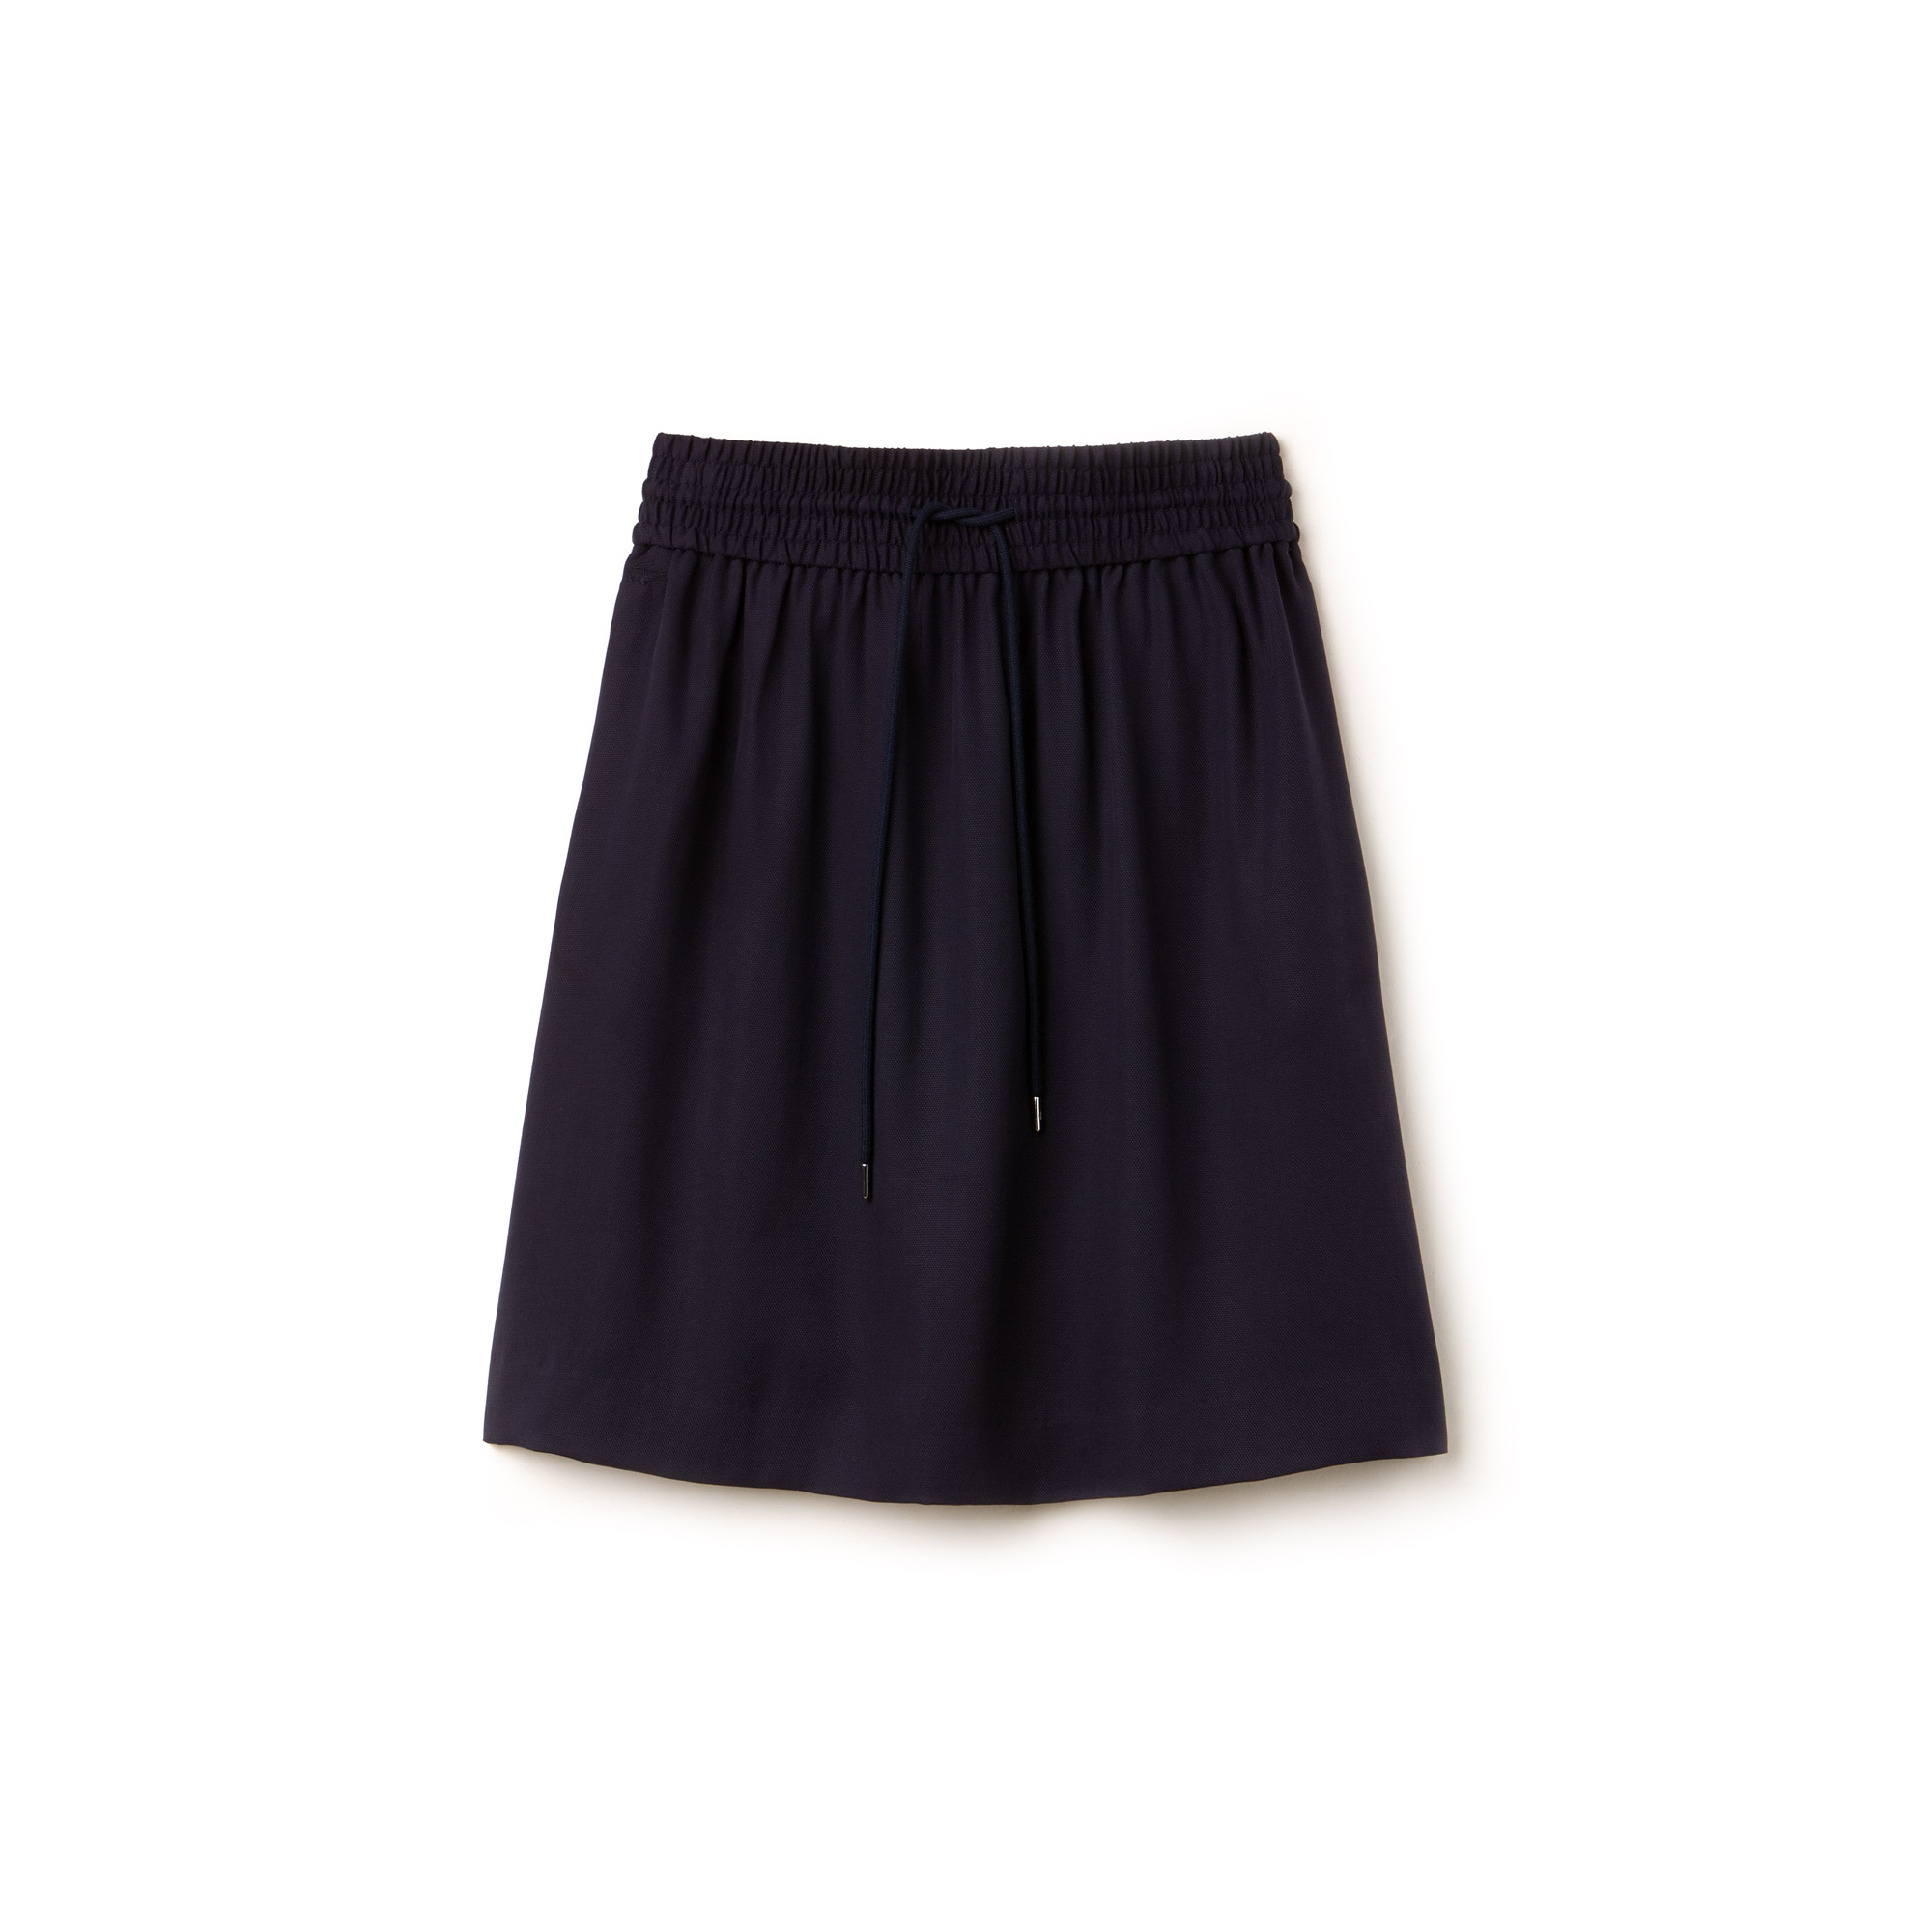 Women's Elasticized Waistband Piqué Mid-Length Skirt